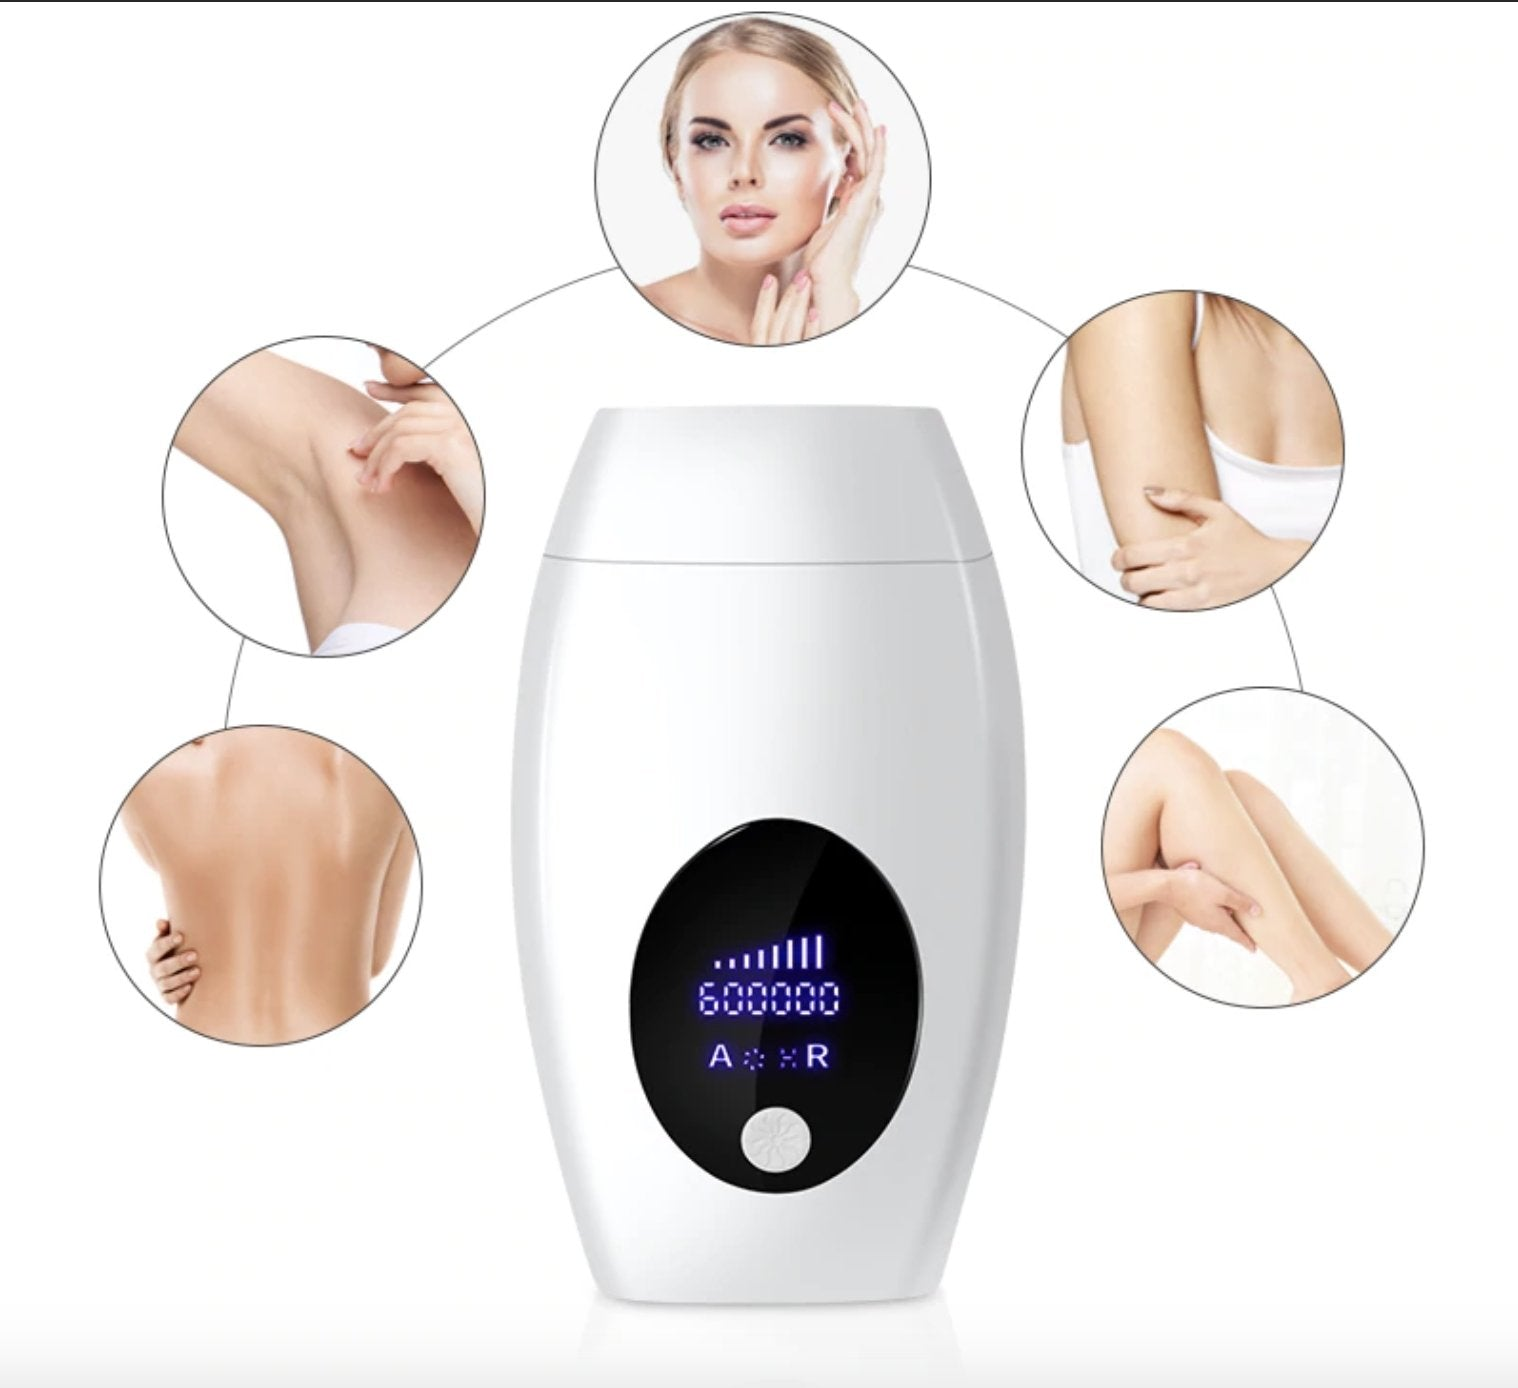 IPL LCD LASER HAIR REMOVAL HANDSET - Reflexion London Beauty